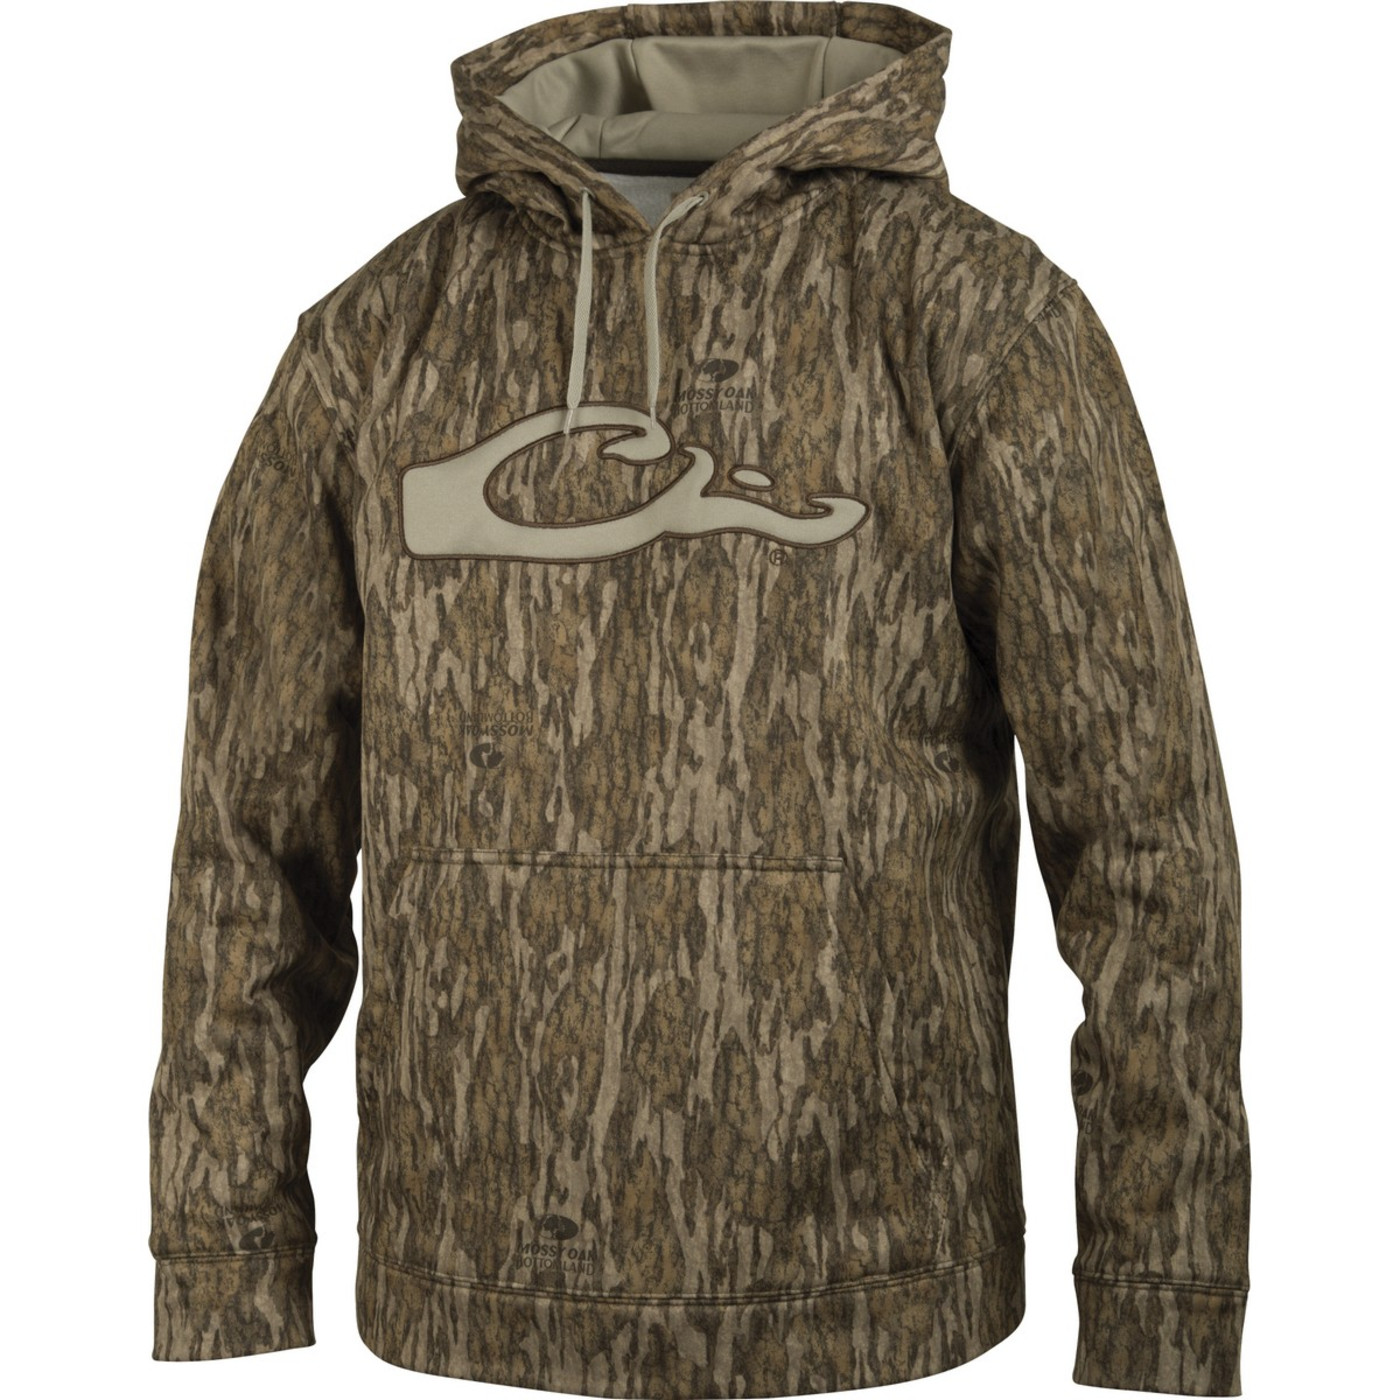 Drake Performance Hoodie in Mossy Oak Bottomland Color